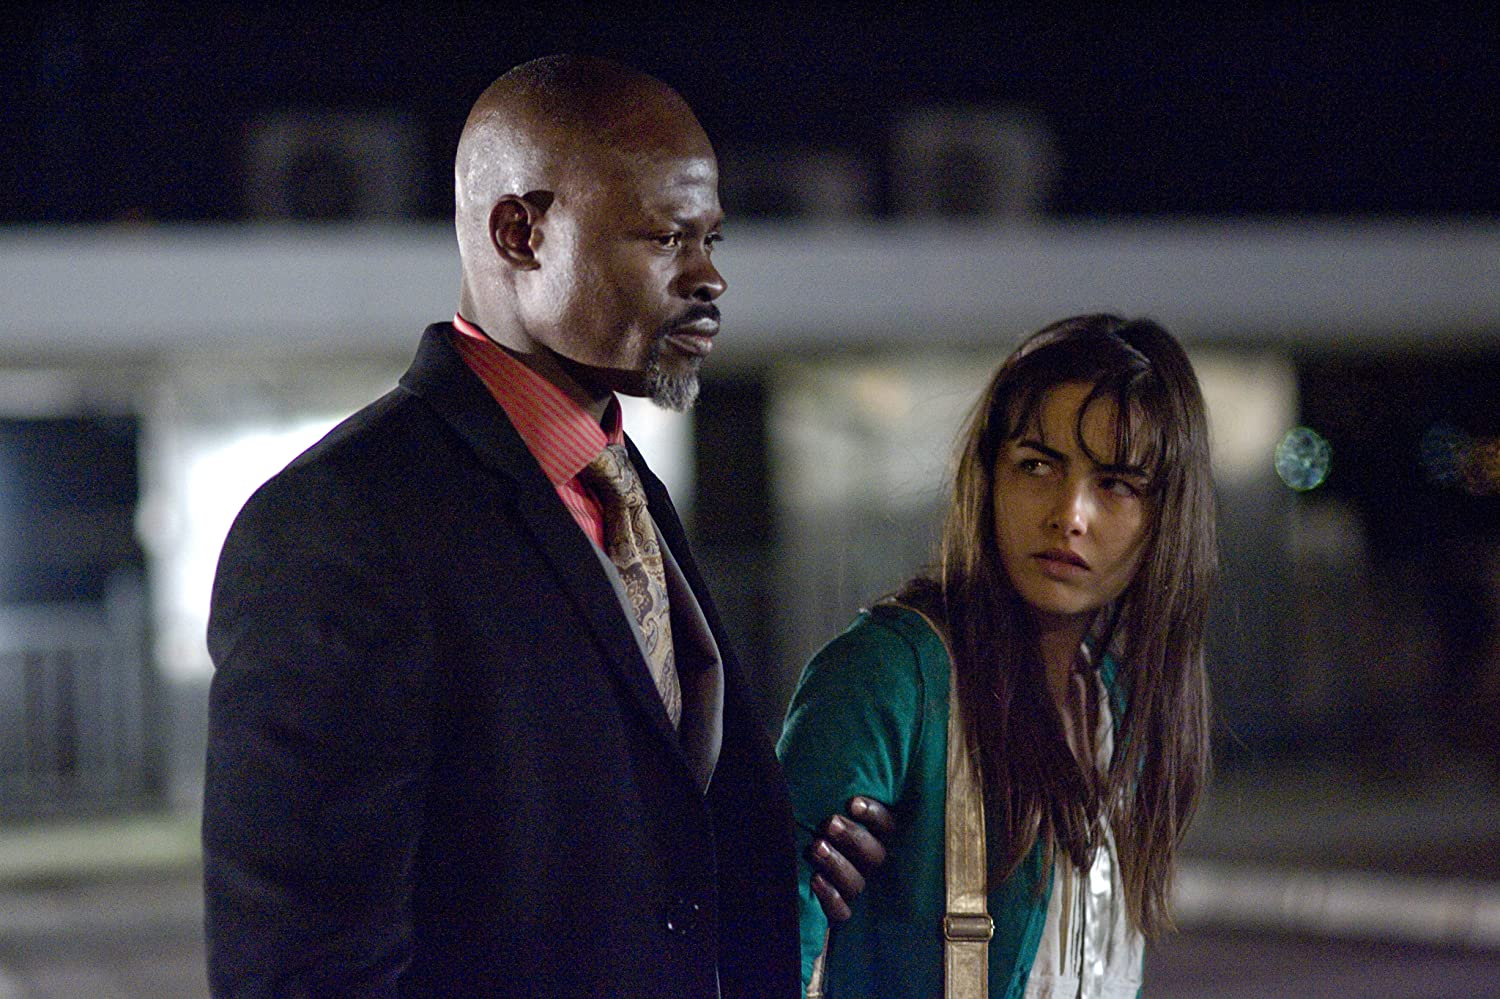 Camilla Belle and Djimon Hounsou in Push (2009)